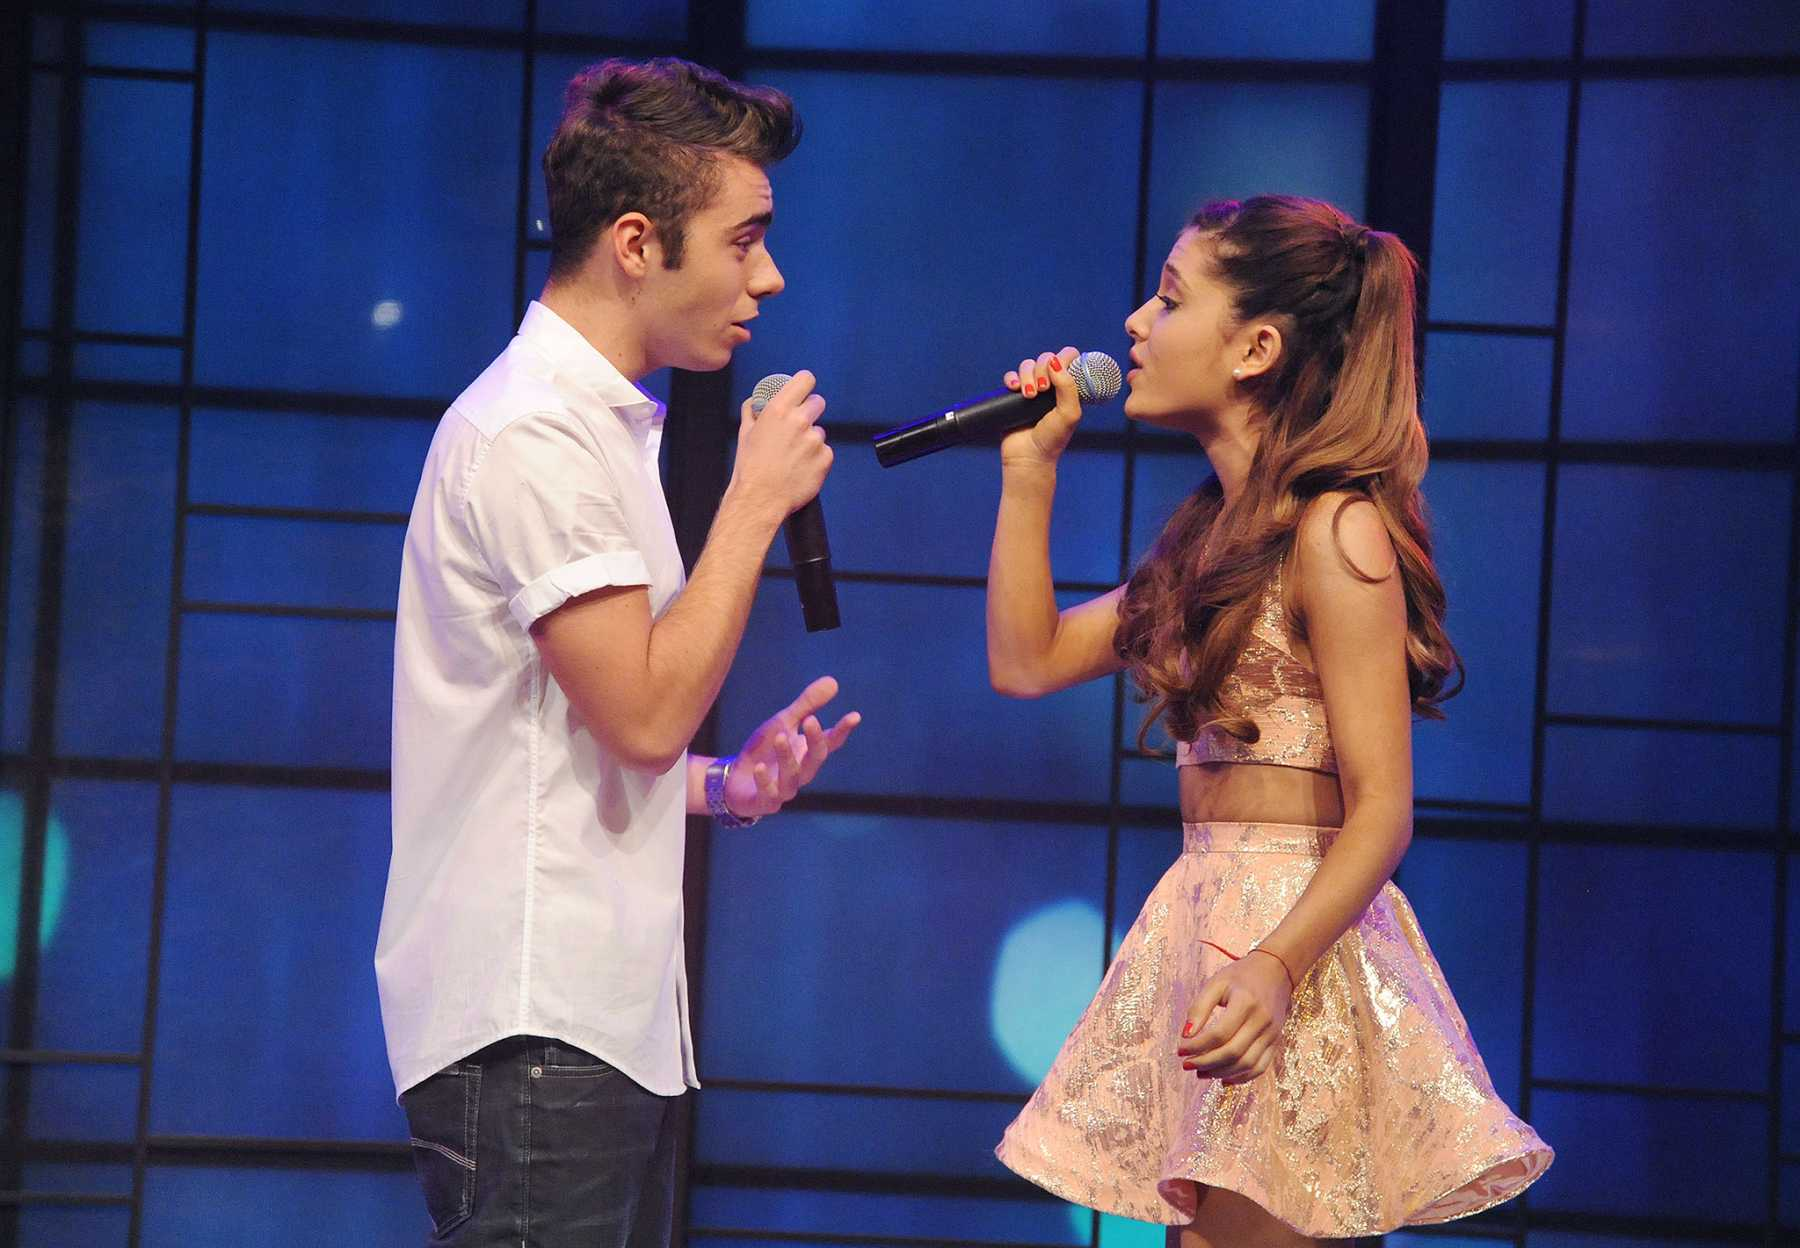 Ariana Grande Is No Heartbreaker, Responds To Ex's Accusations